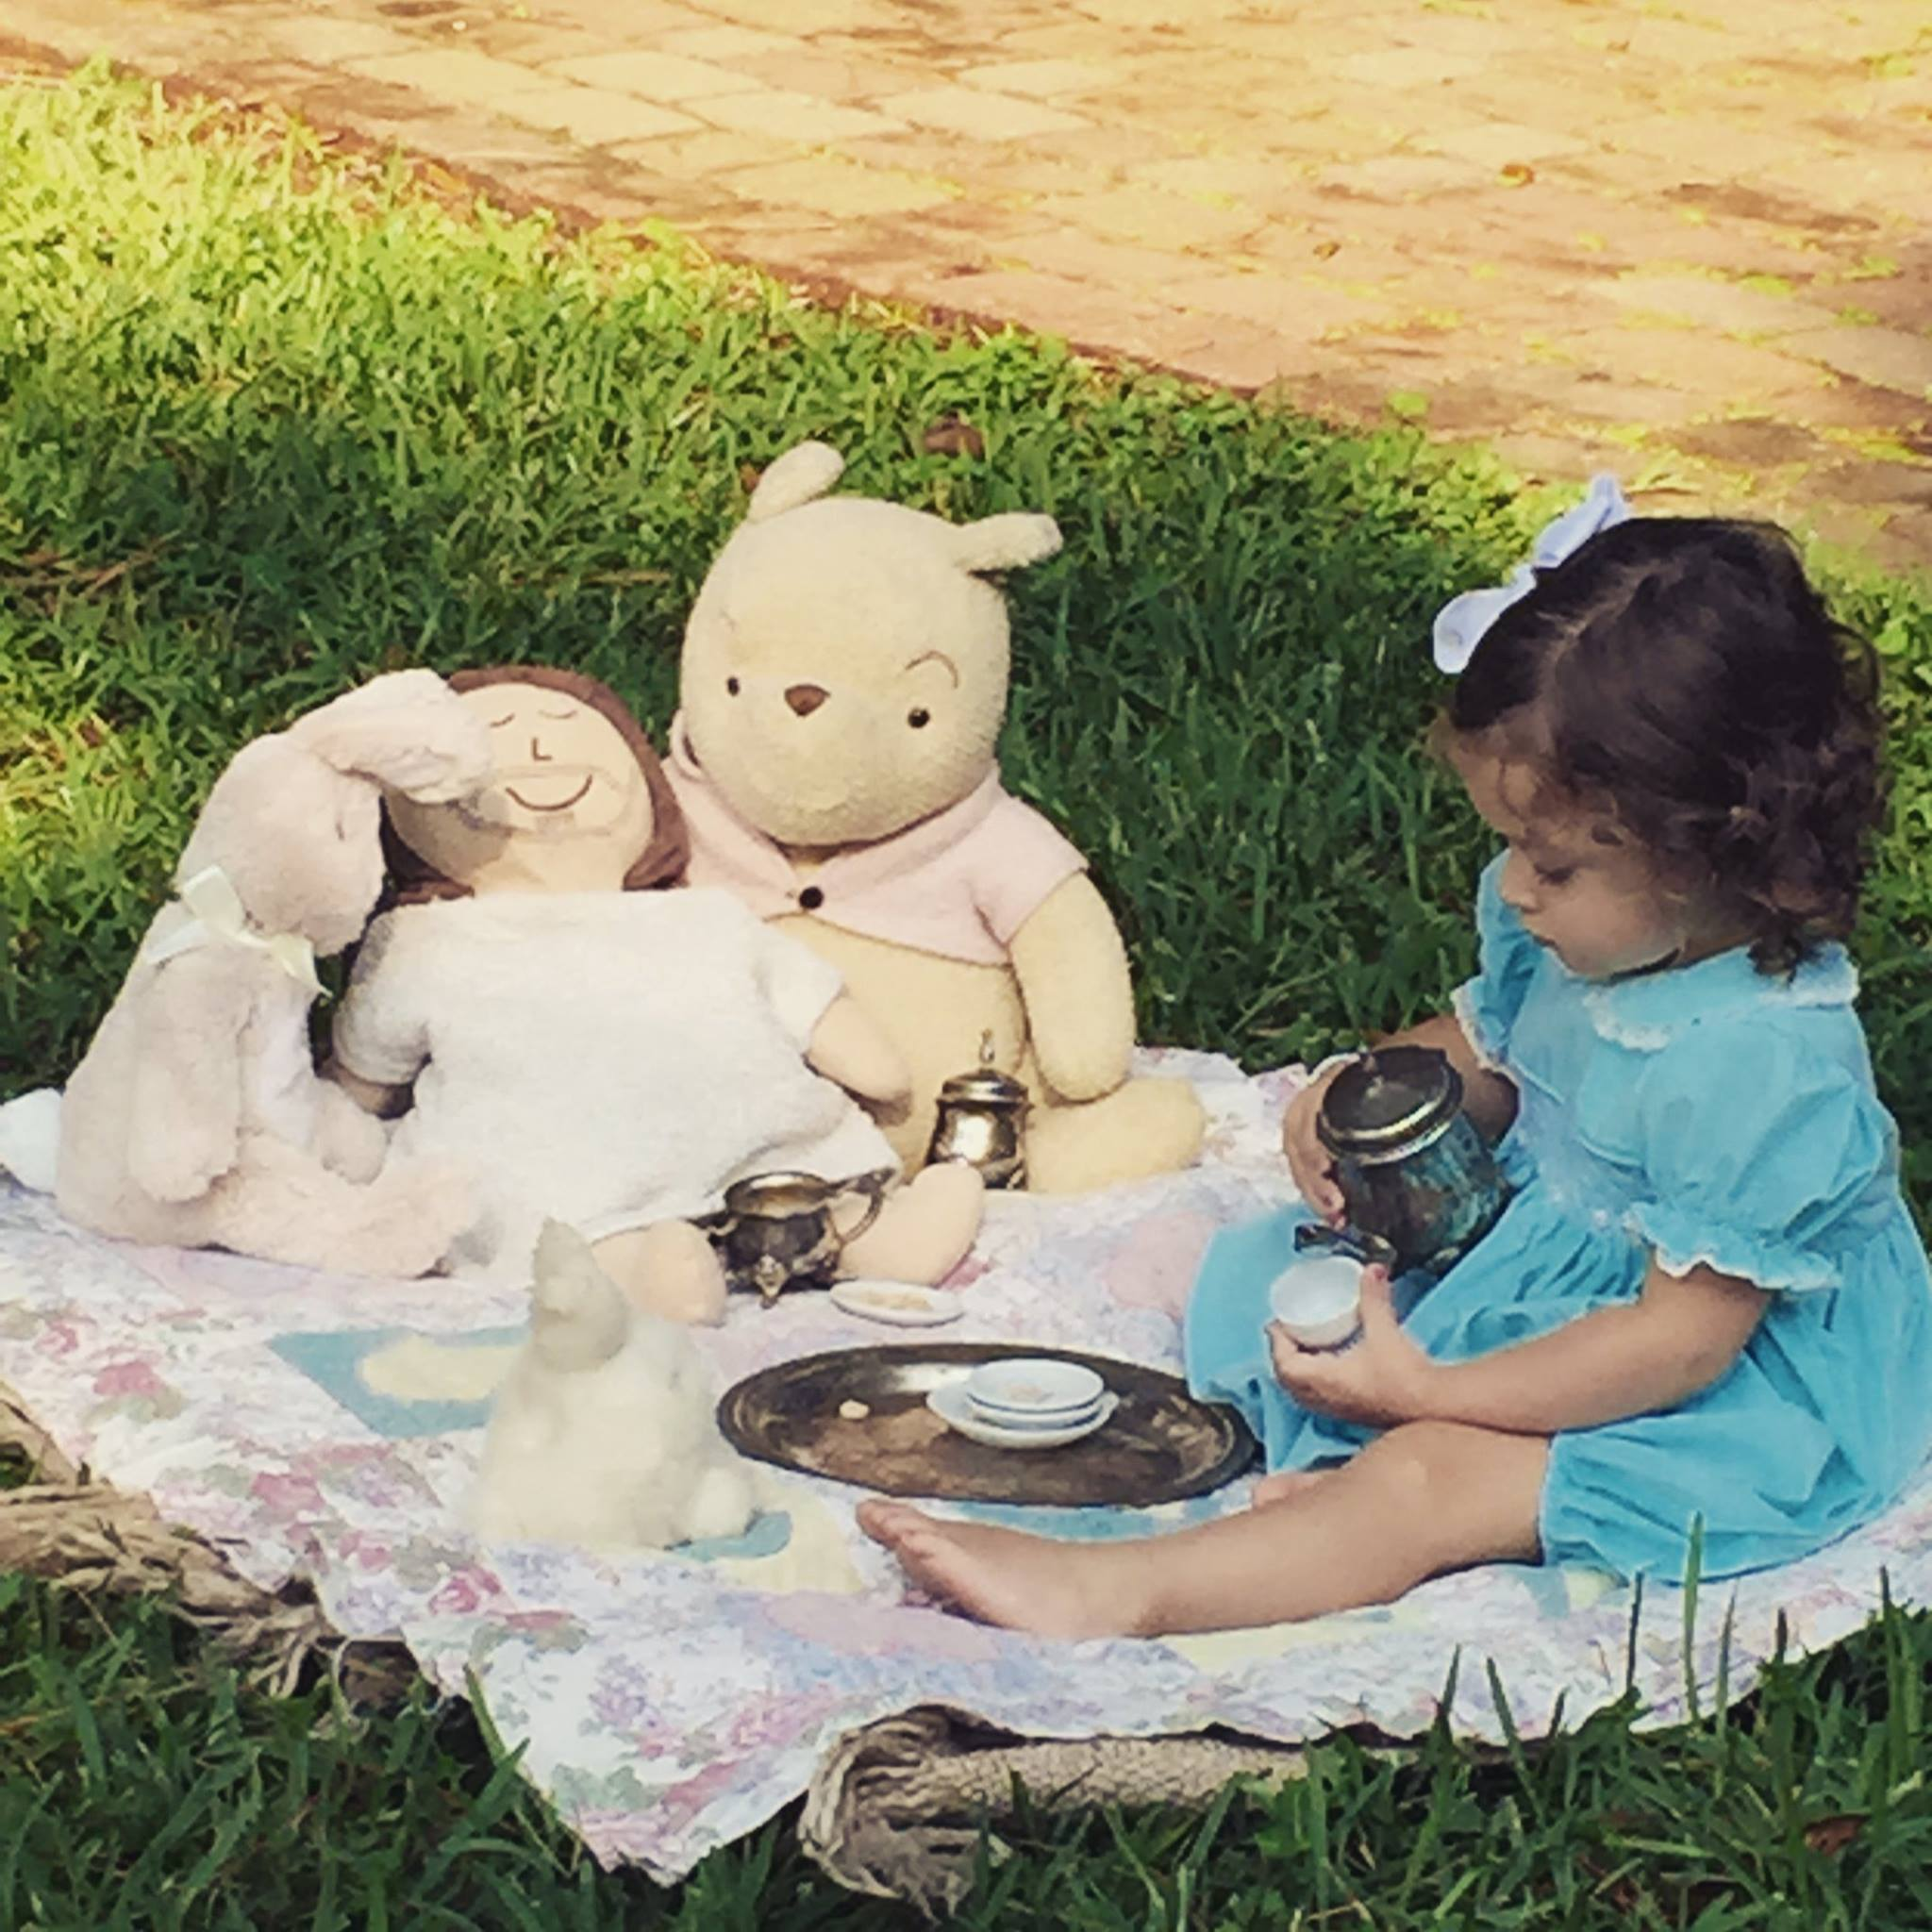 Tea Party Friends - JuJu invited her new Jesus doll to join her and her friends for an afternoon tea party.